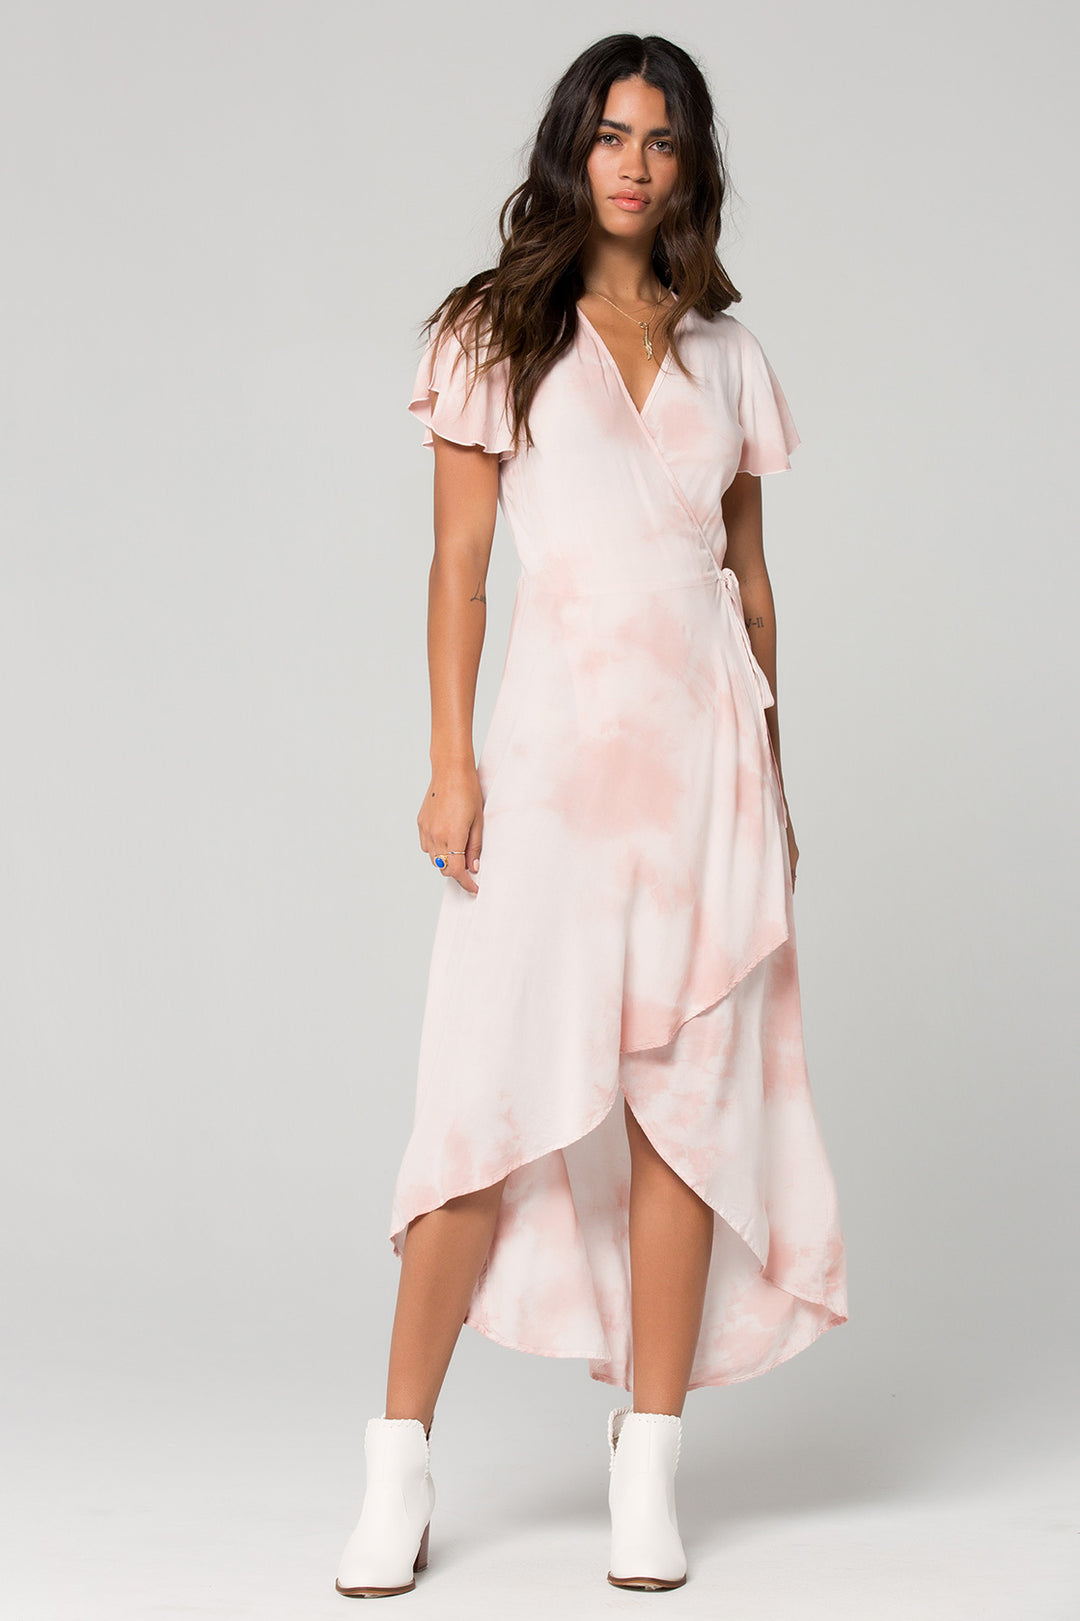 St Tropez Blush Tie Dye Wrap Dress Master